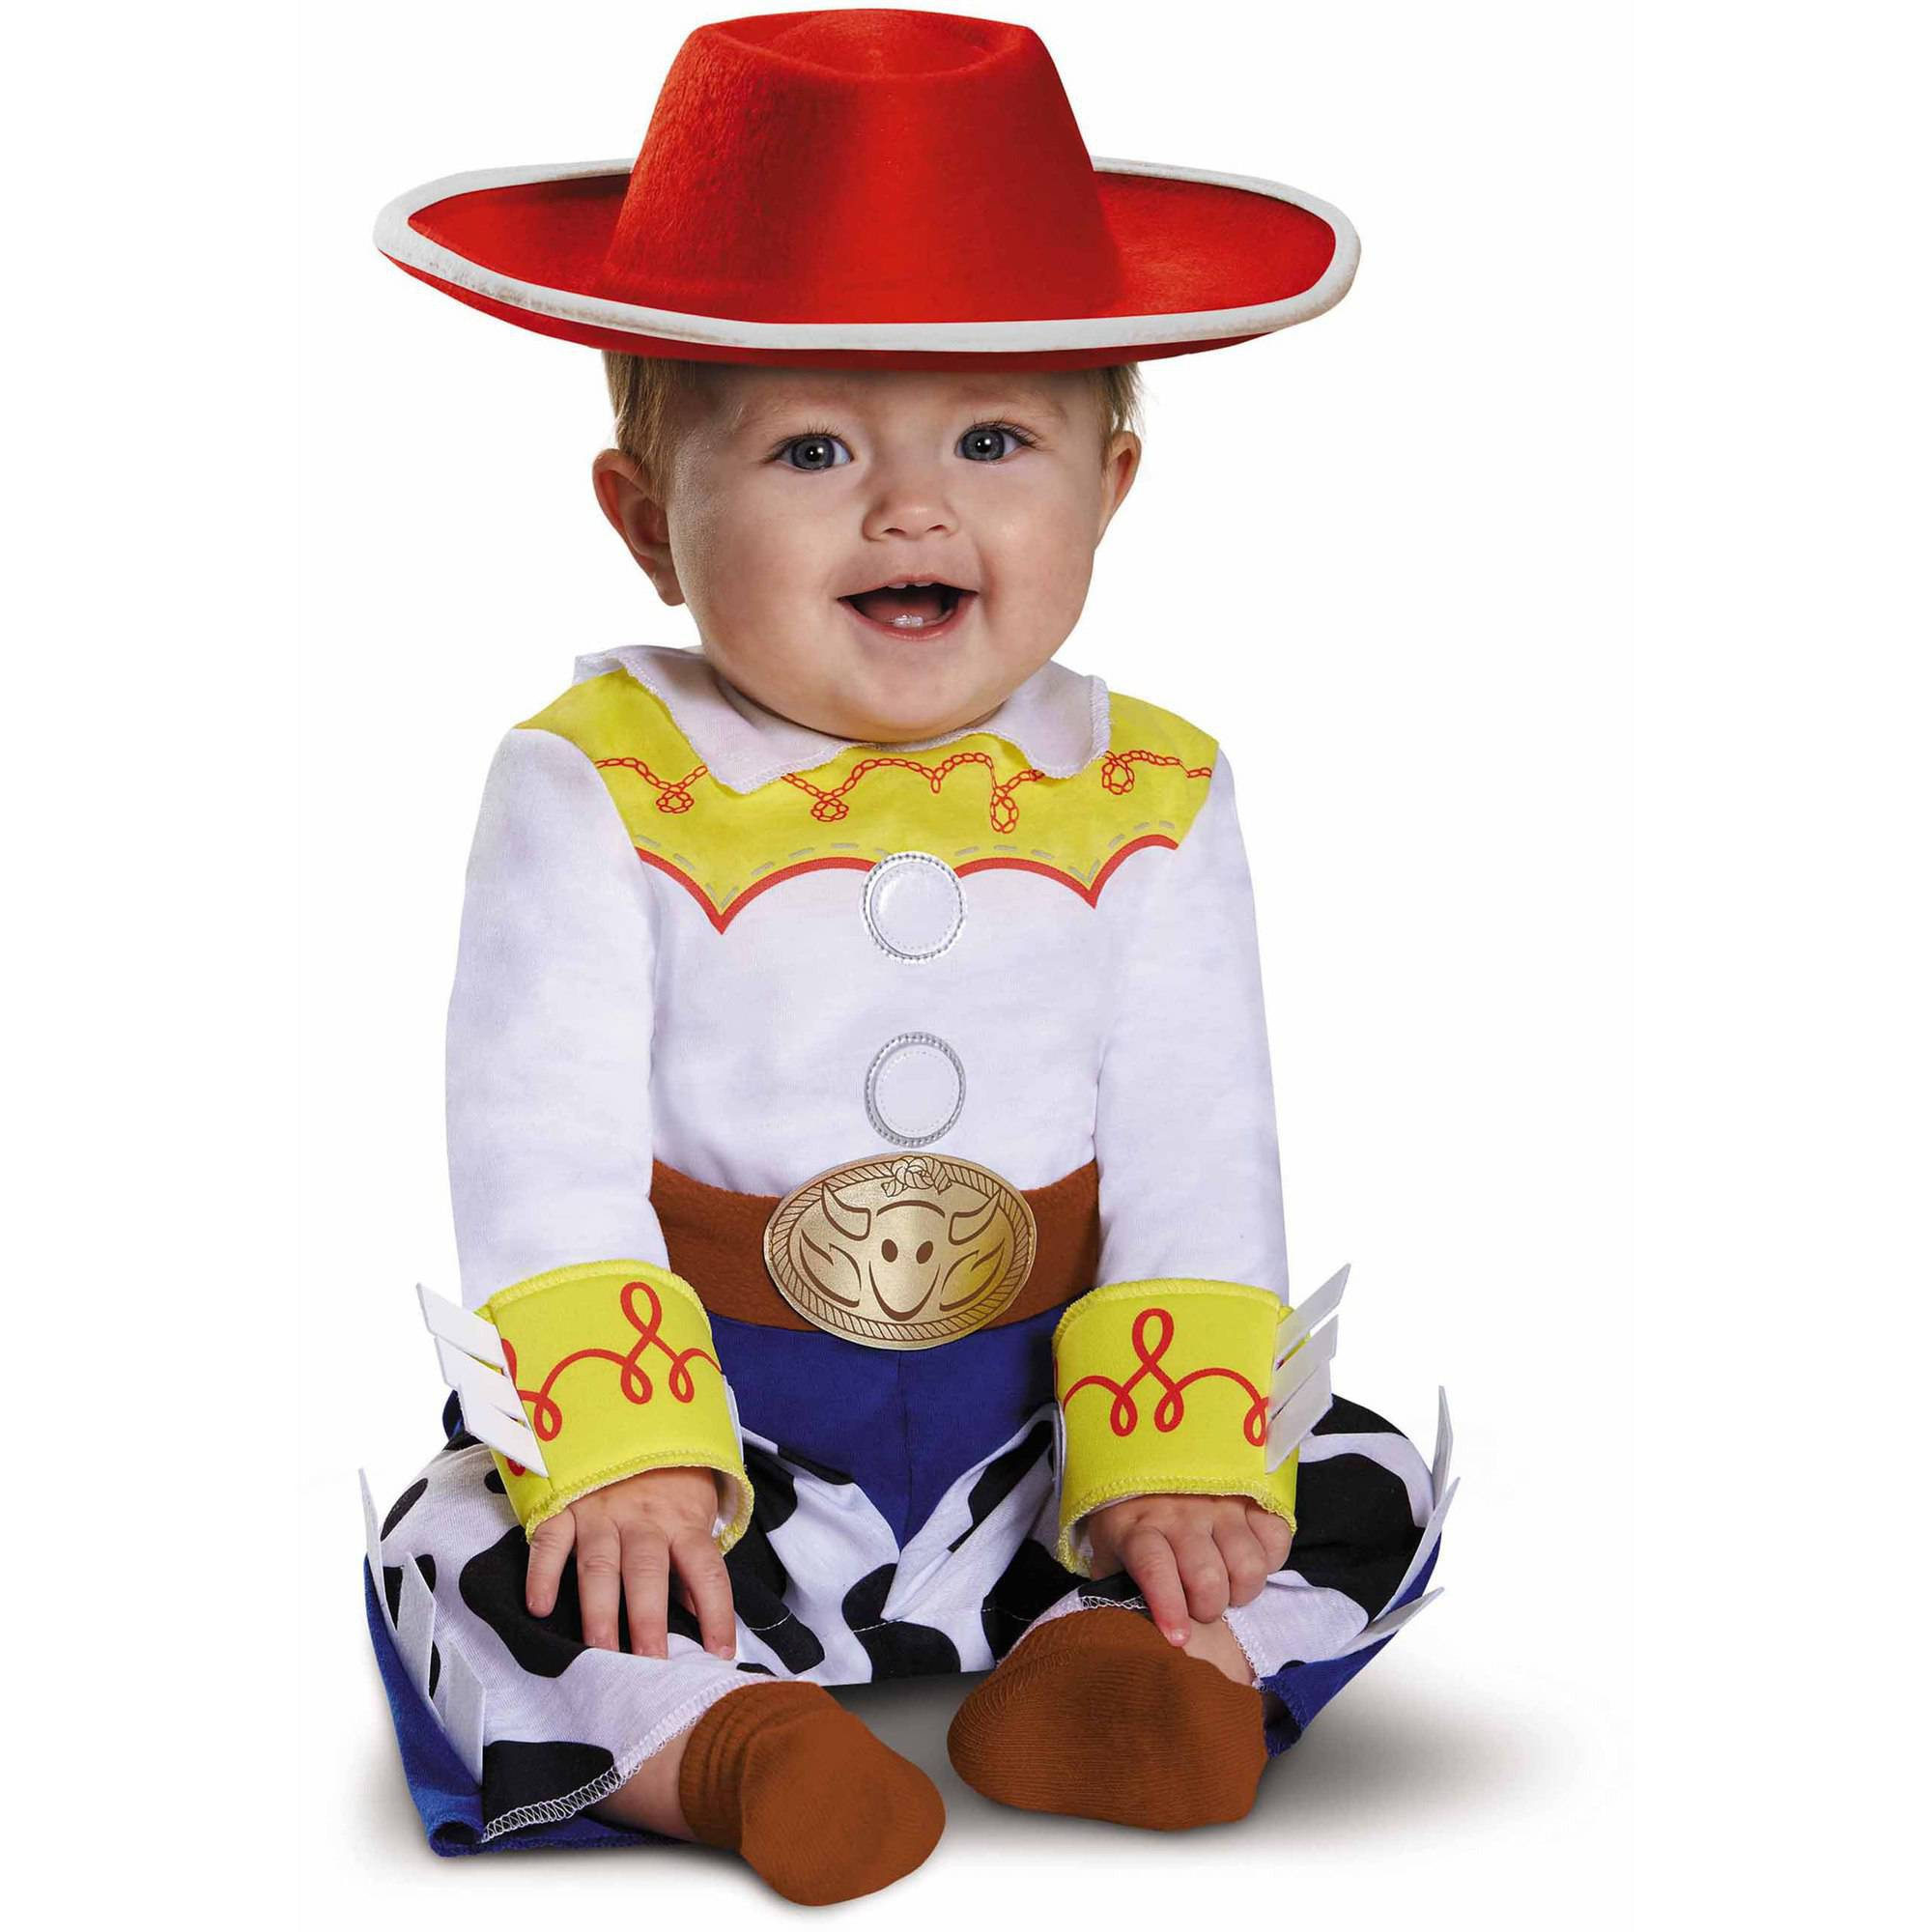 Toy Story Jessie Deluxe Infant Halloween Costume